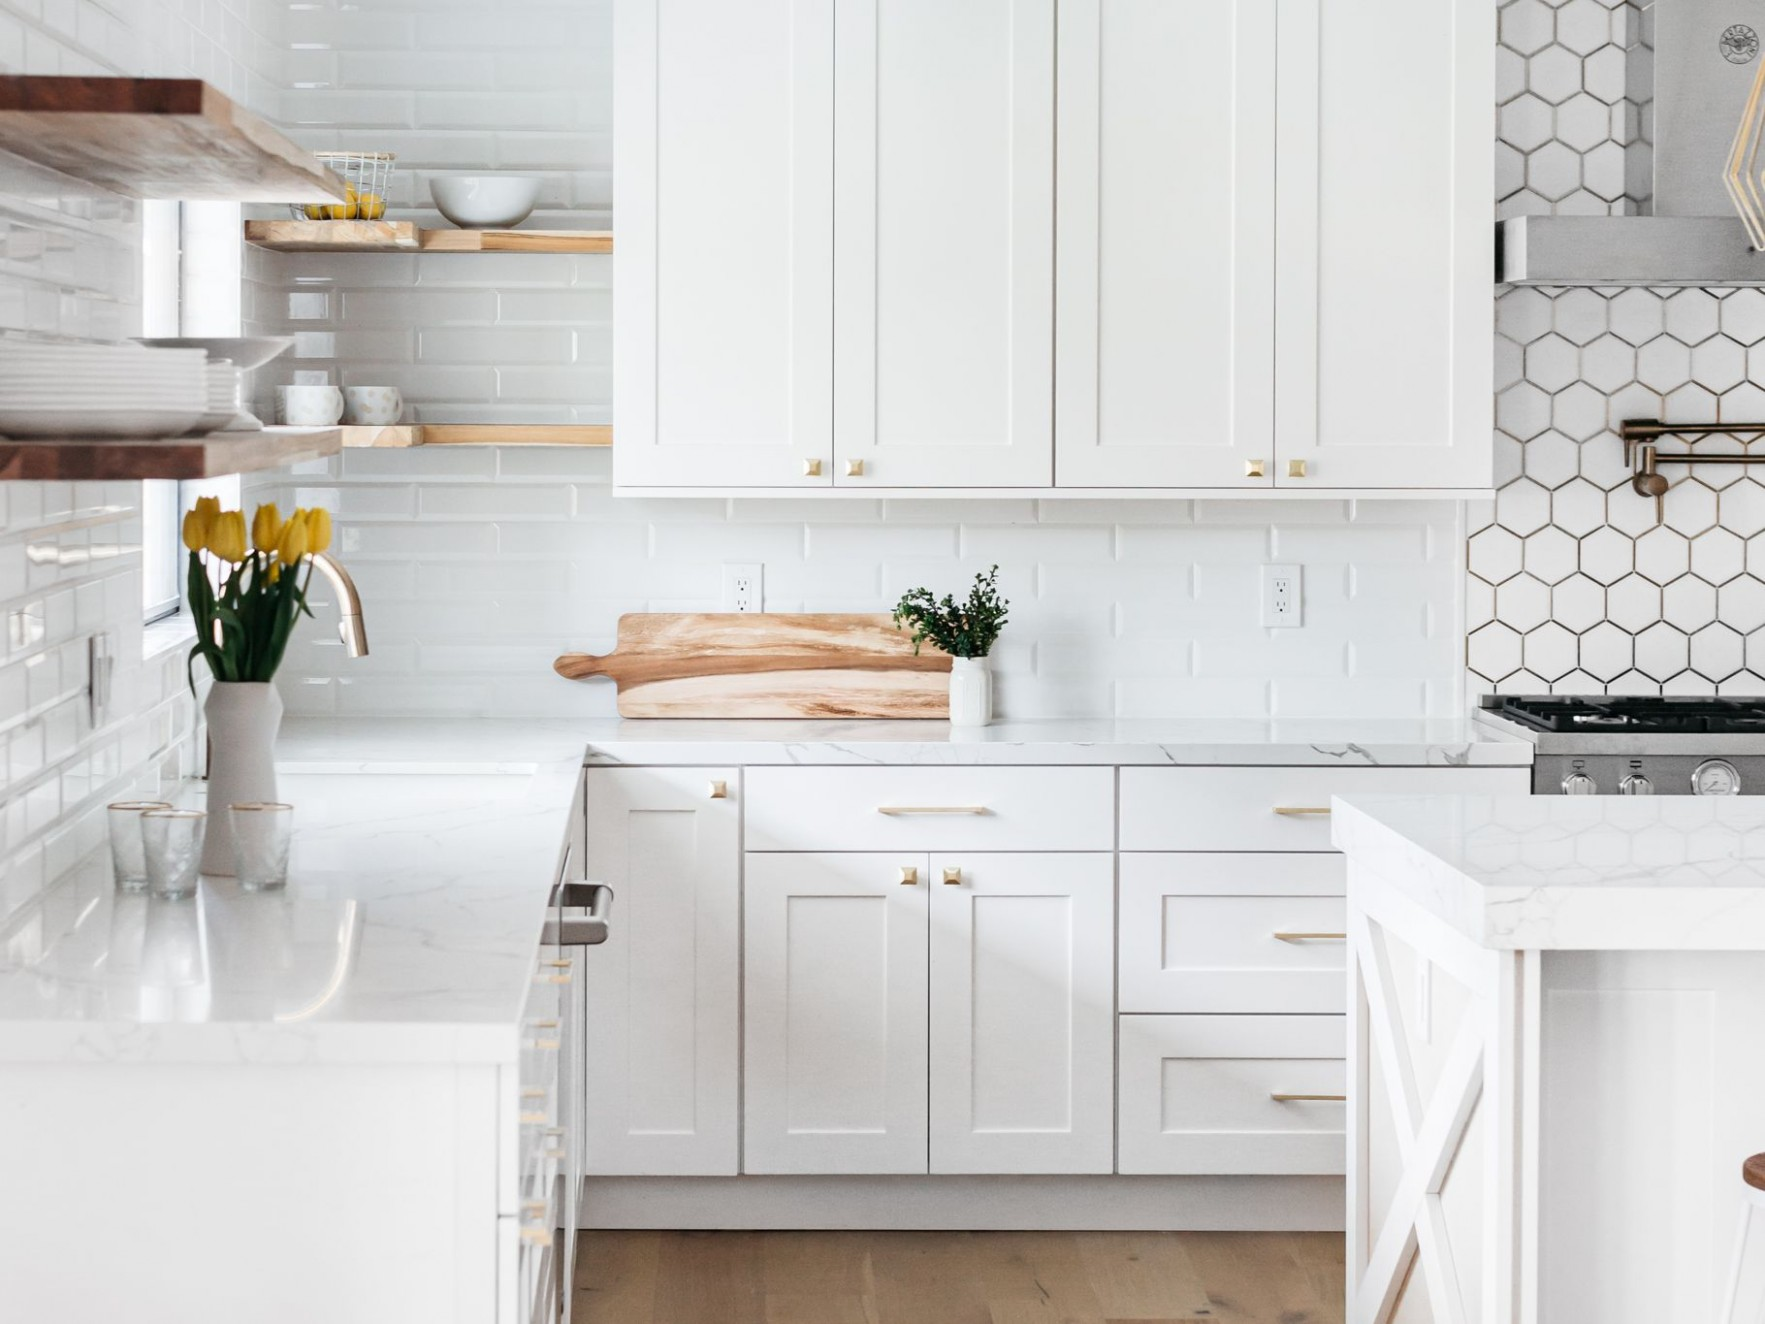 Guide to Standard Kitchen Cabinet Dimensions - Base Kitchen Cabinets Are Typically